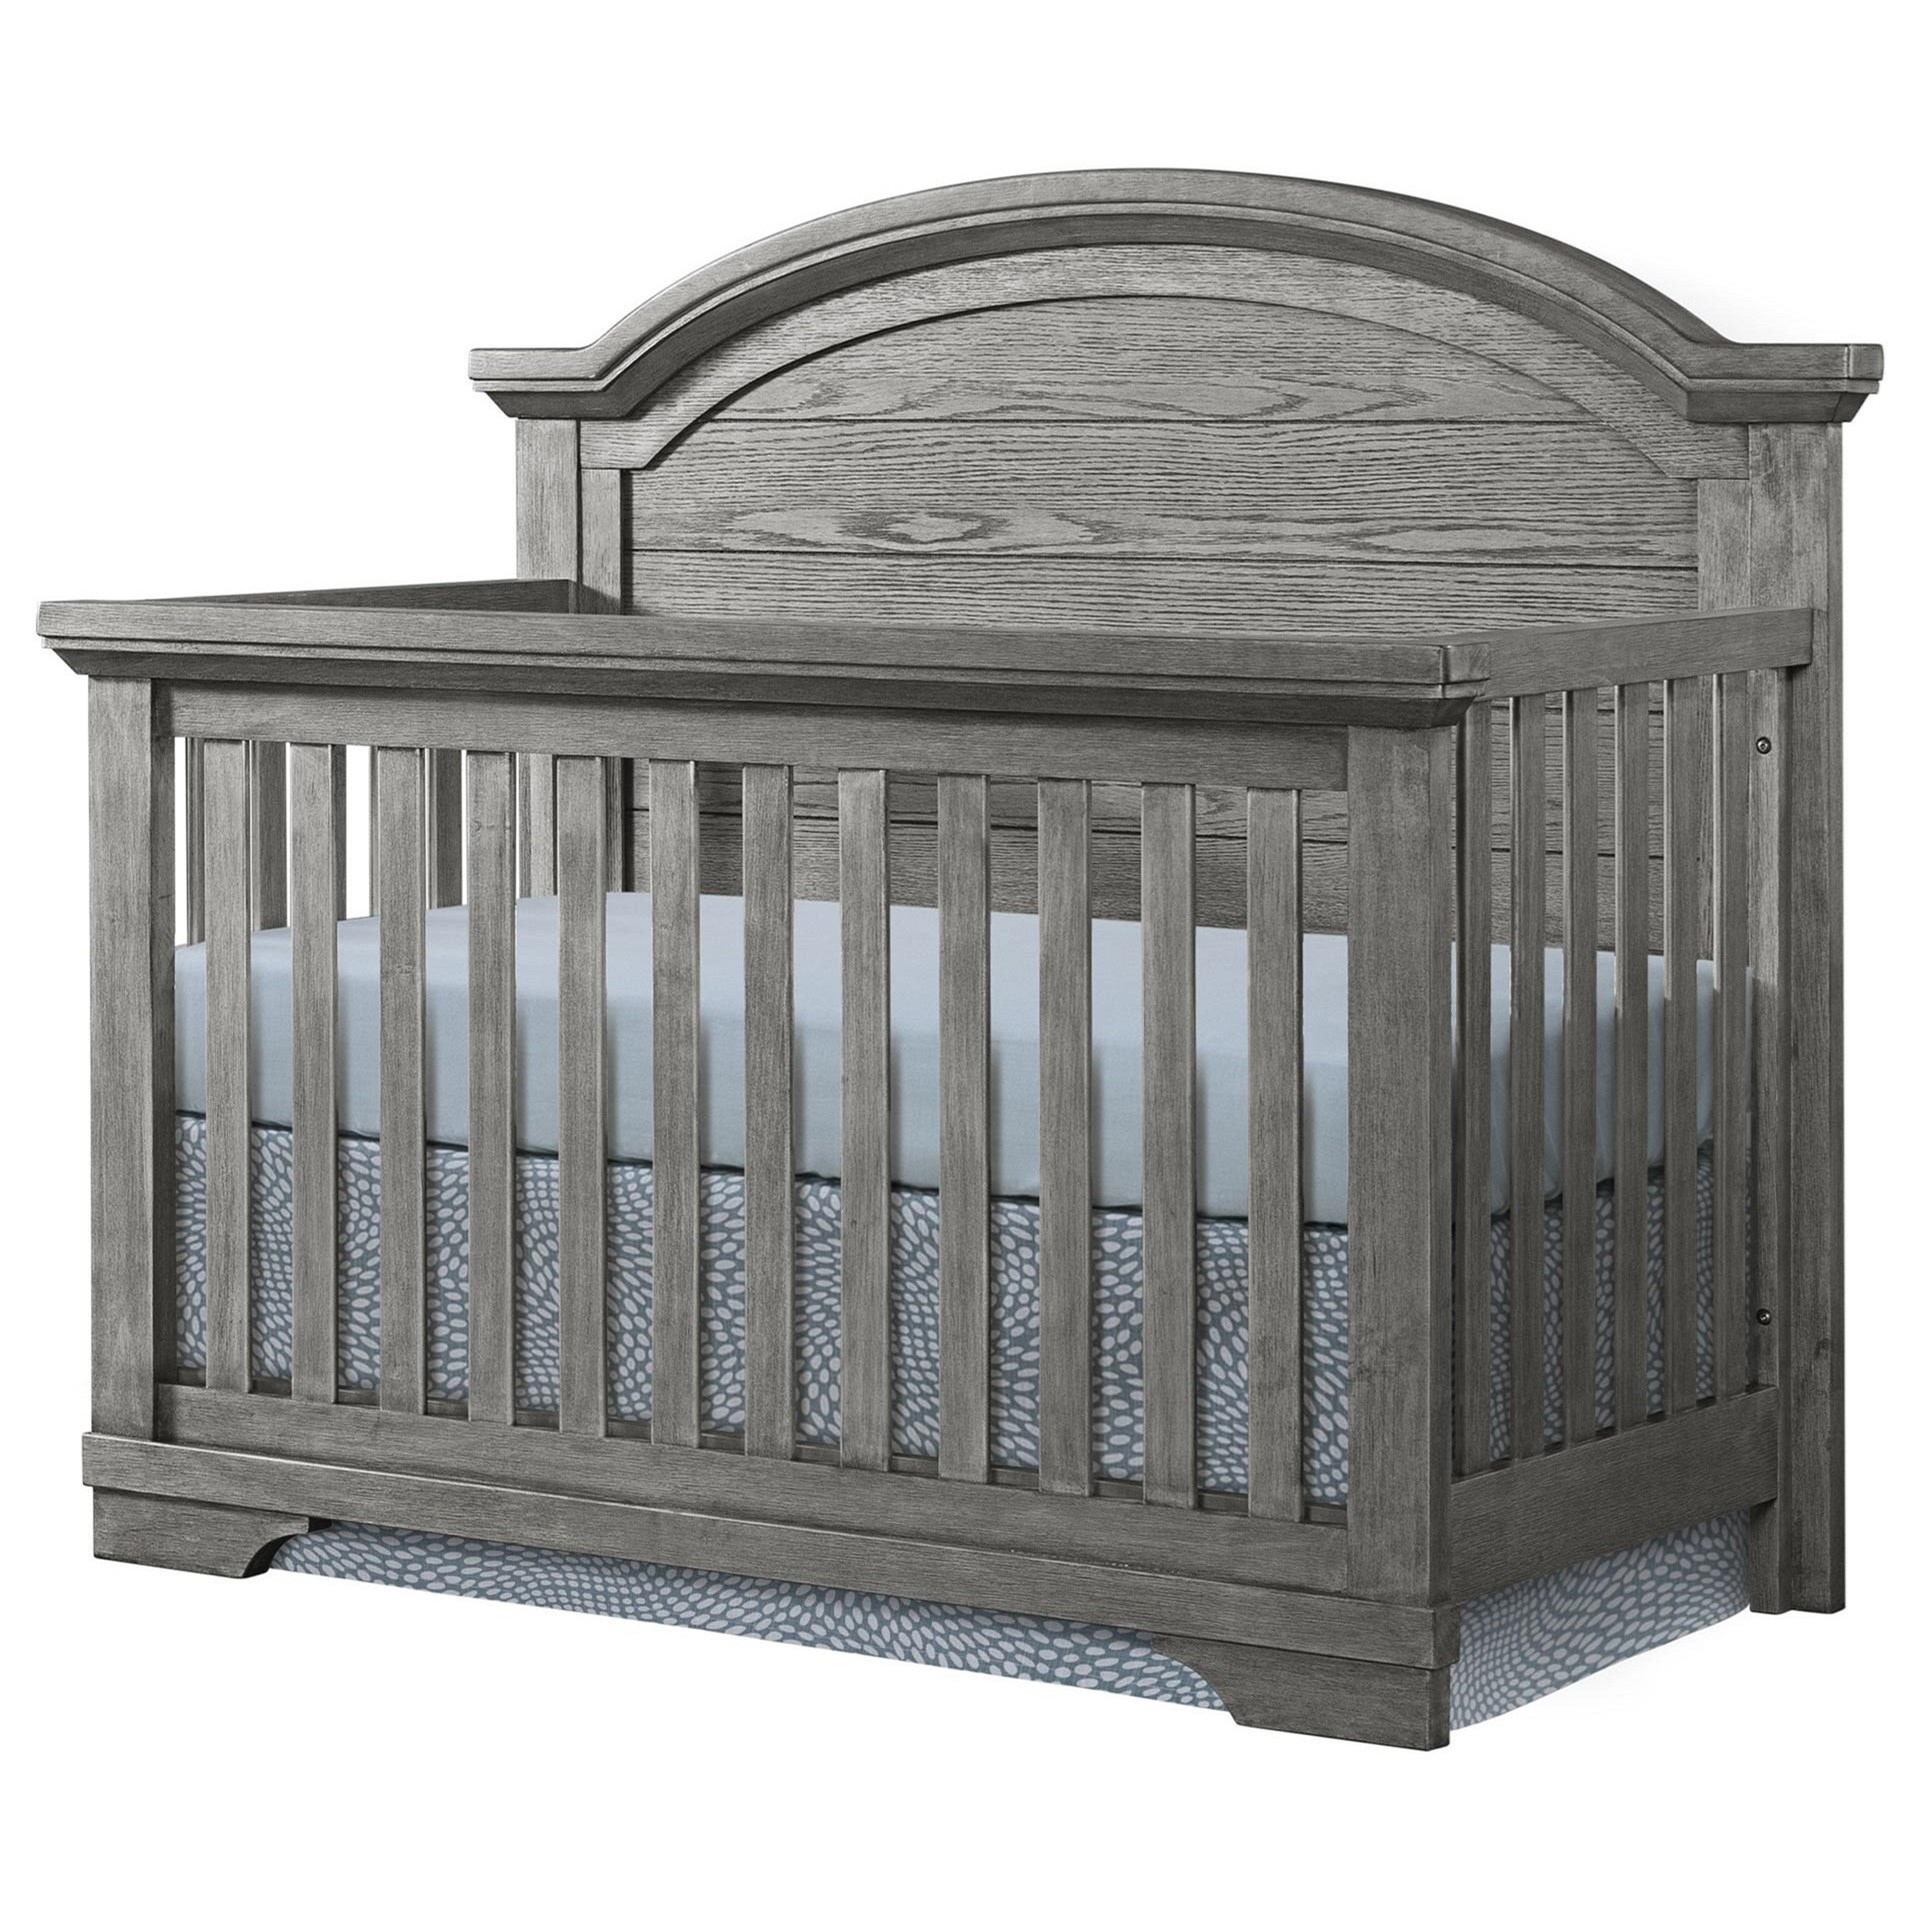 Foundry Arch Top Convertible Crib by Westwood Design at Virginia Furniture Market